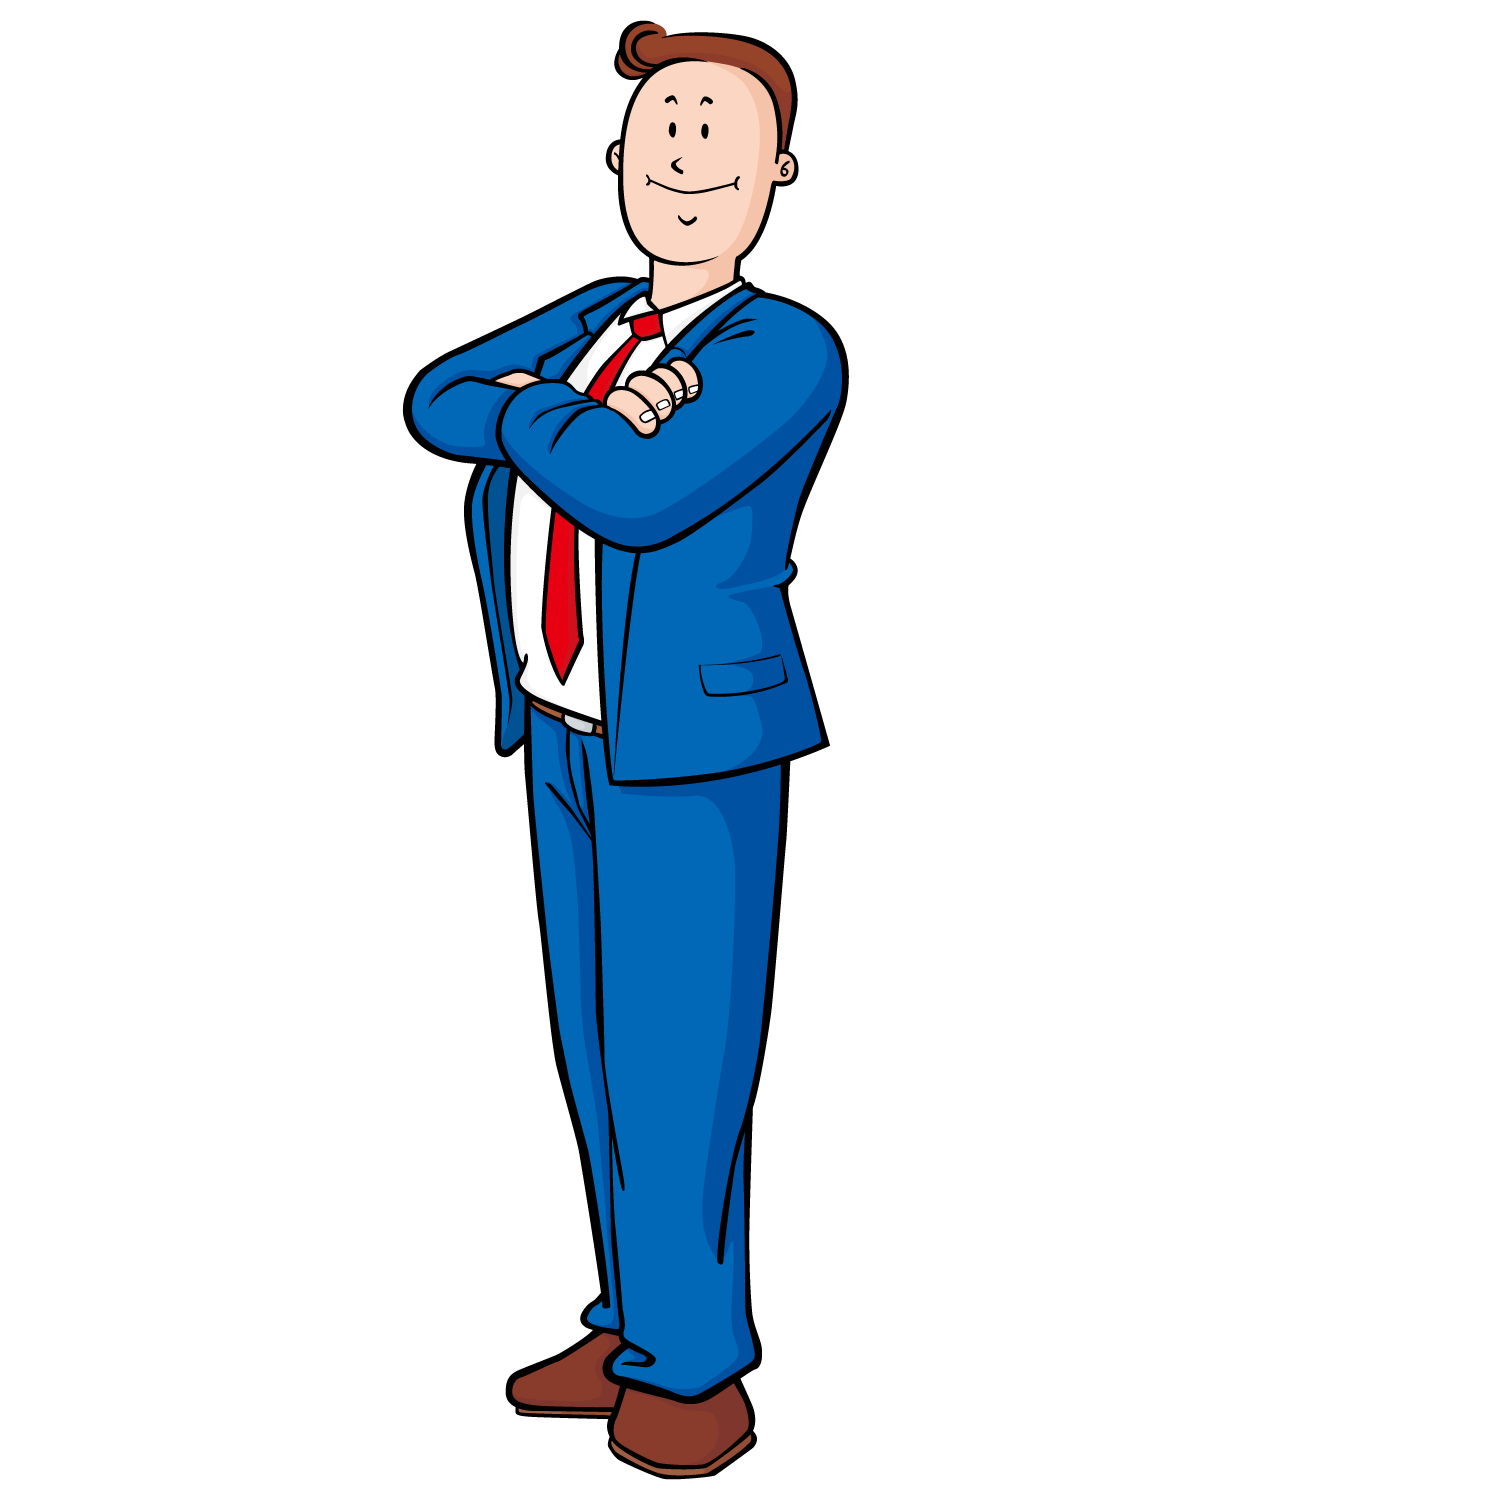 Jobs clipart uniform. Office business clip art